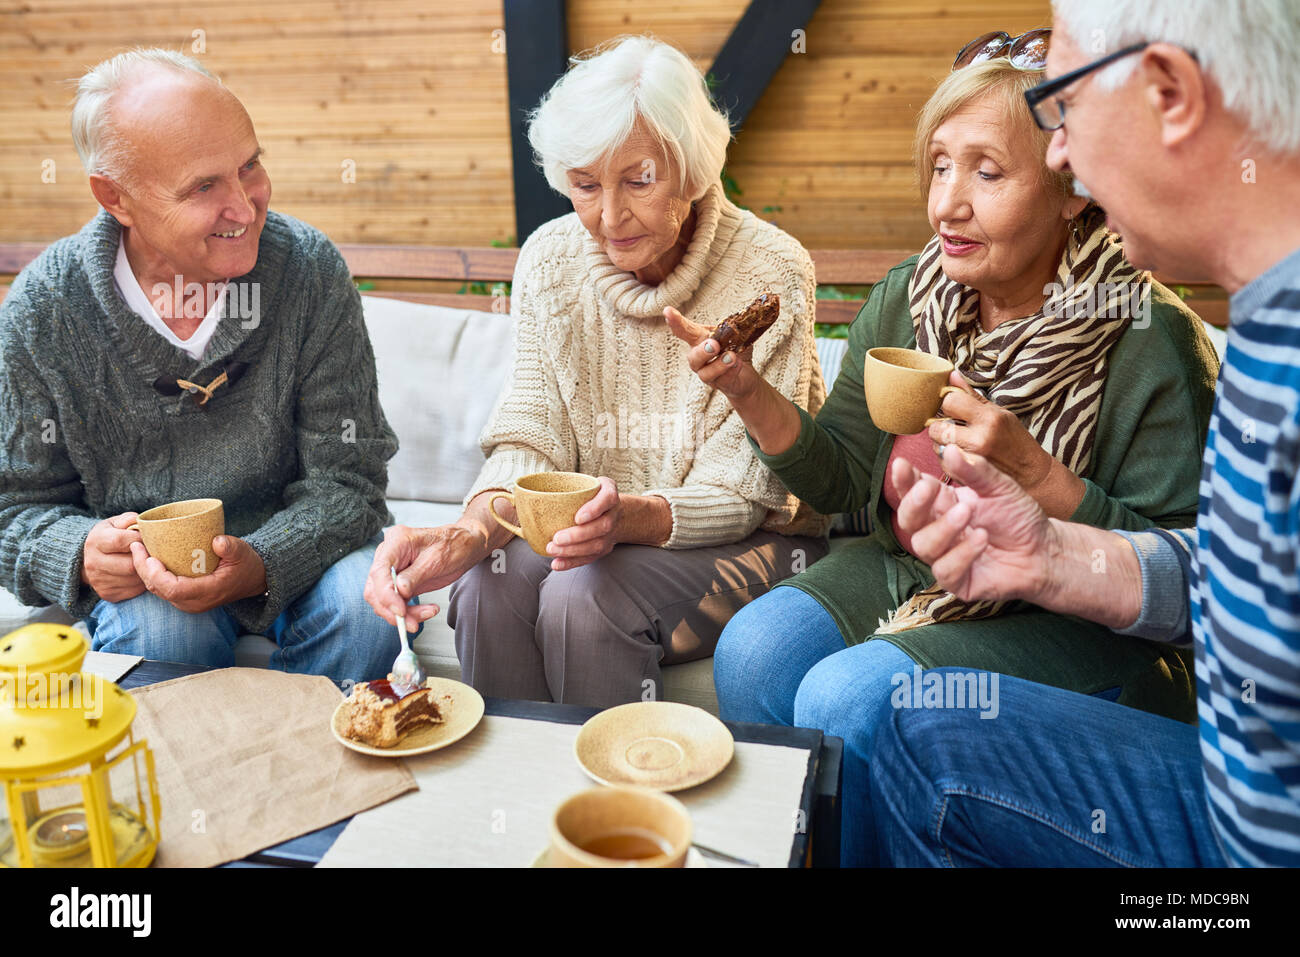 Senior Friends Enjoying Tea Time in Cafe Photo Stock